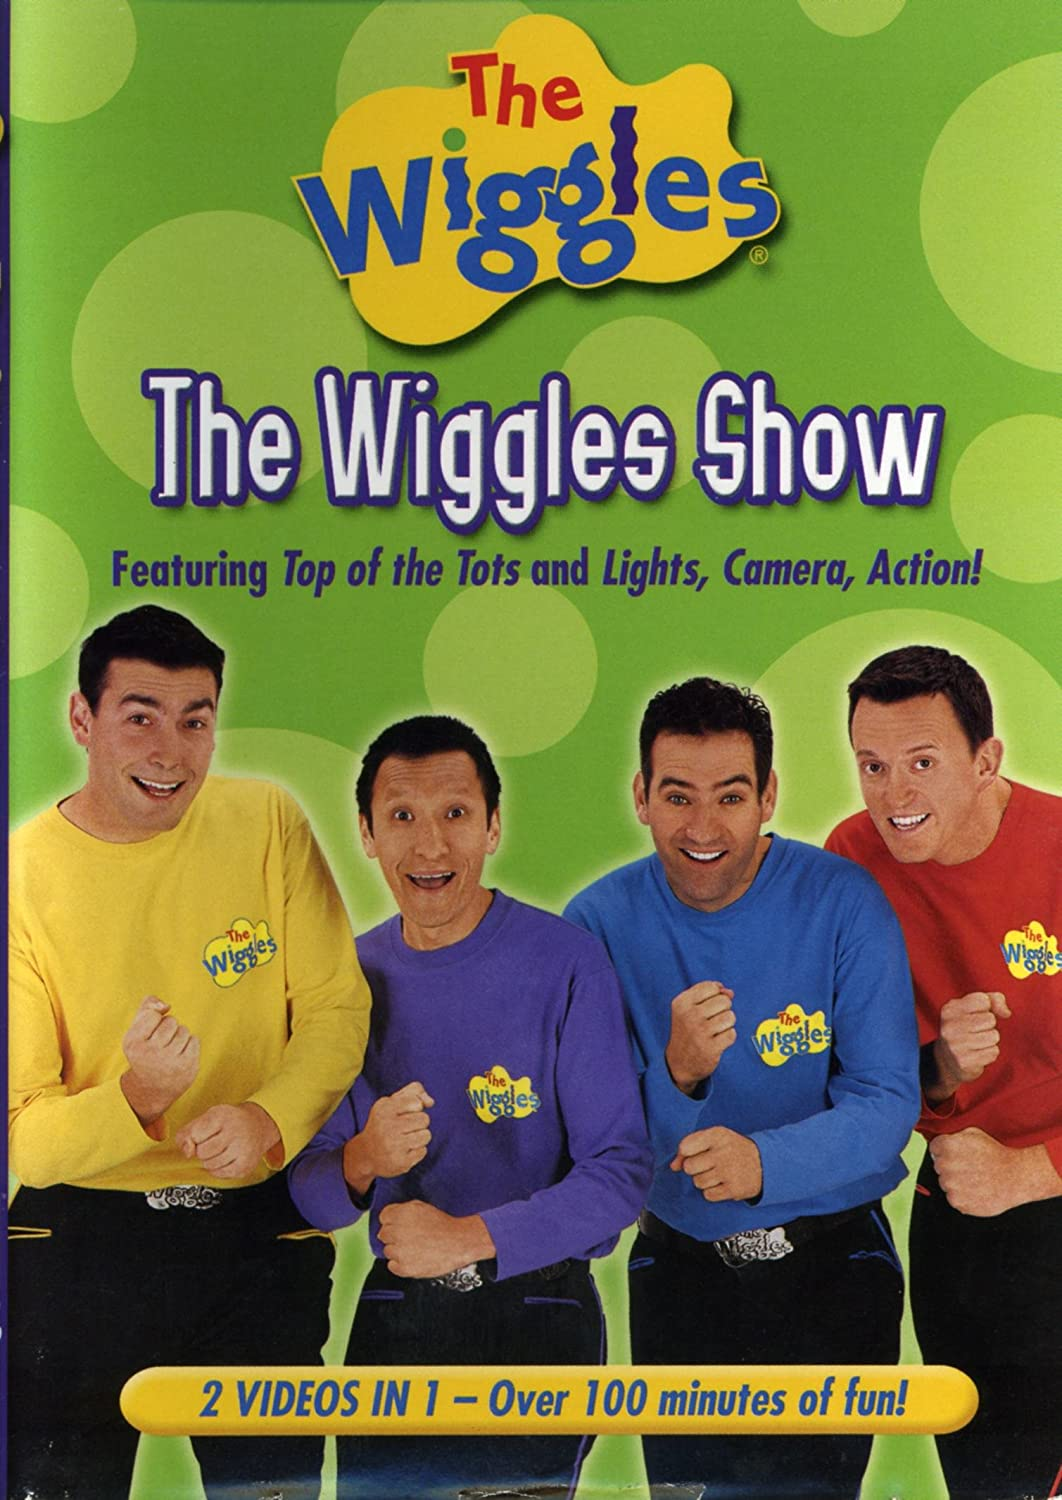 Amazon the wiggles show dvd top of the tots and lights amazon the wiggles show dvd top of the tots and lights camera action murray cook jeff fatt anthony fields greg page movies tv sciox Choice Image